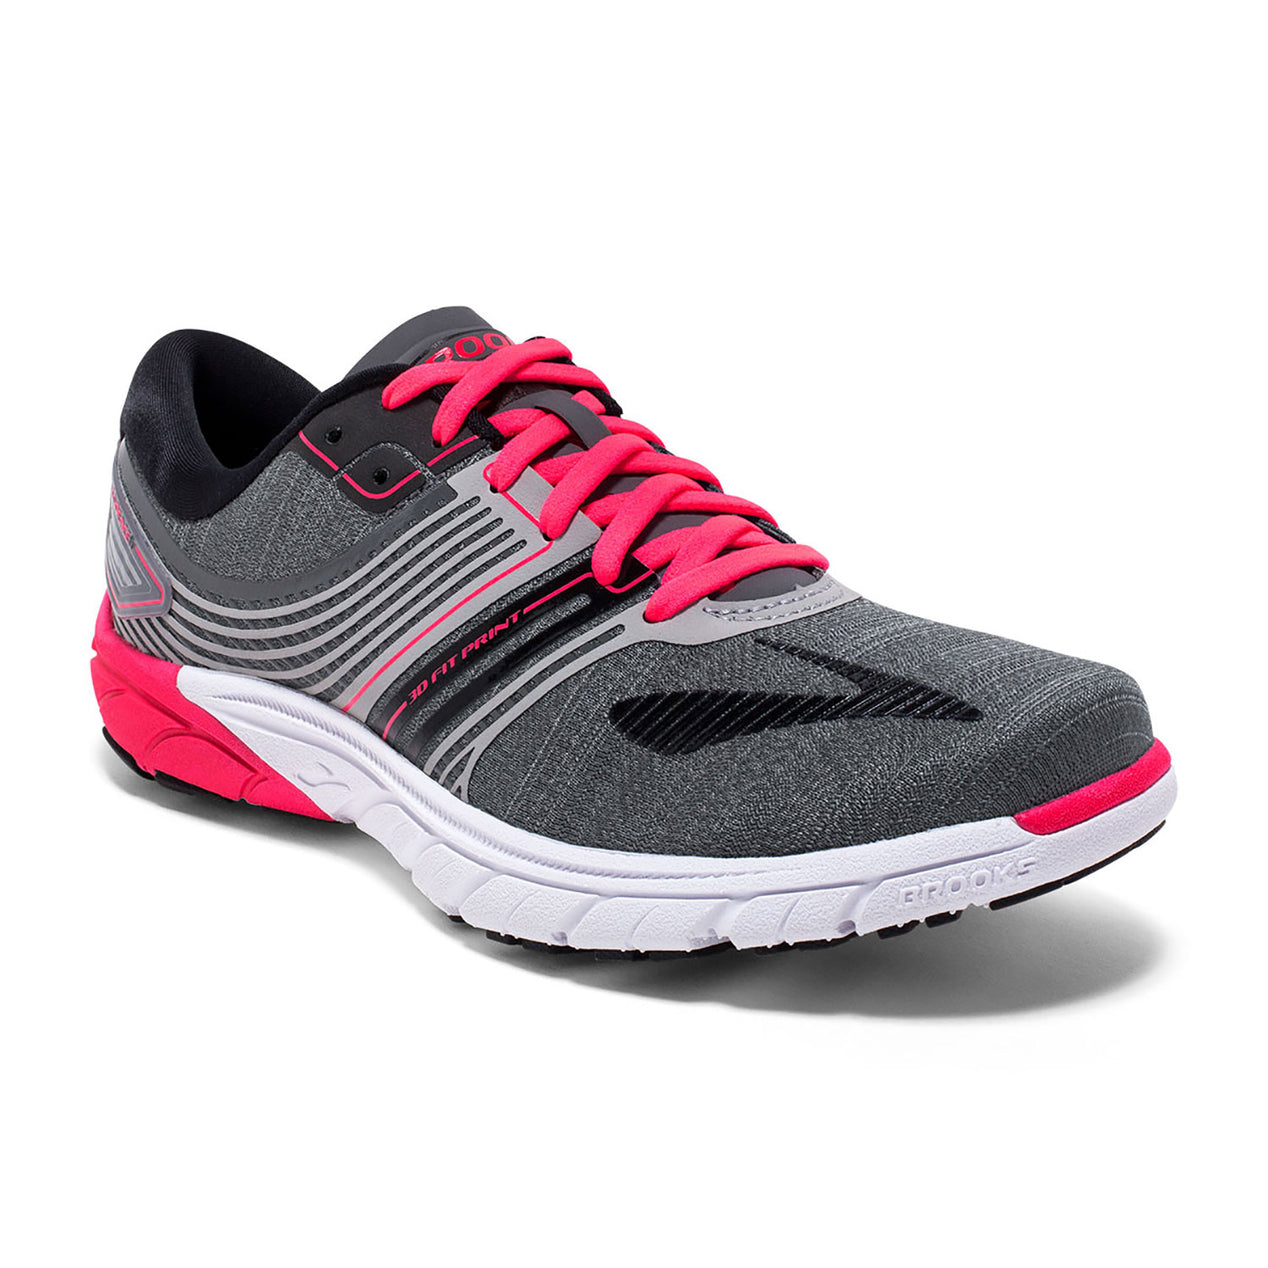 12ddd420bde Brooks Women s Purecadence 6 Running Shoes